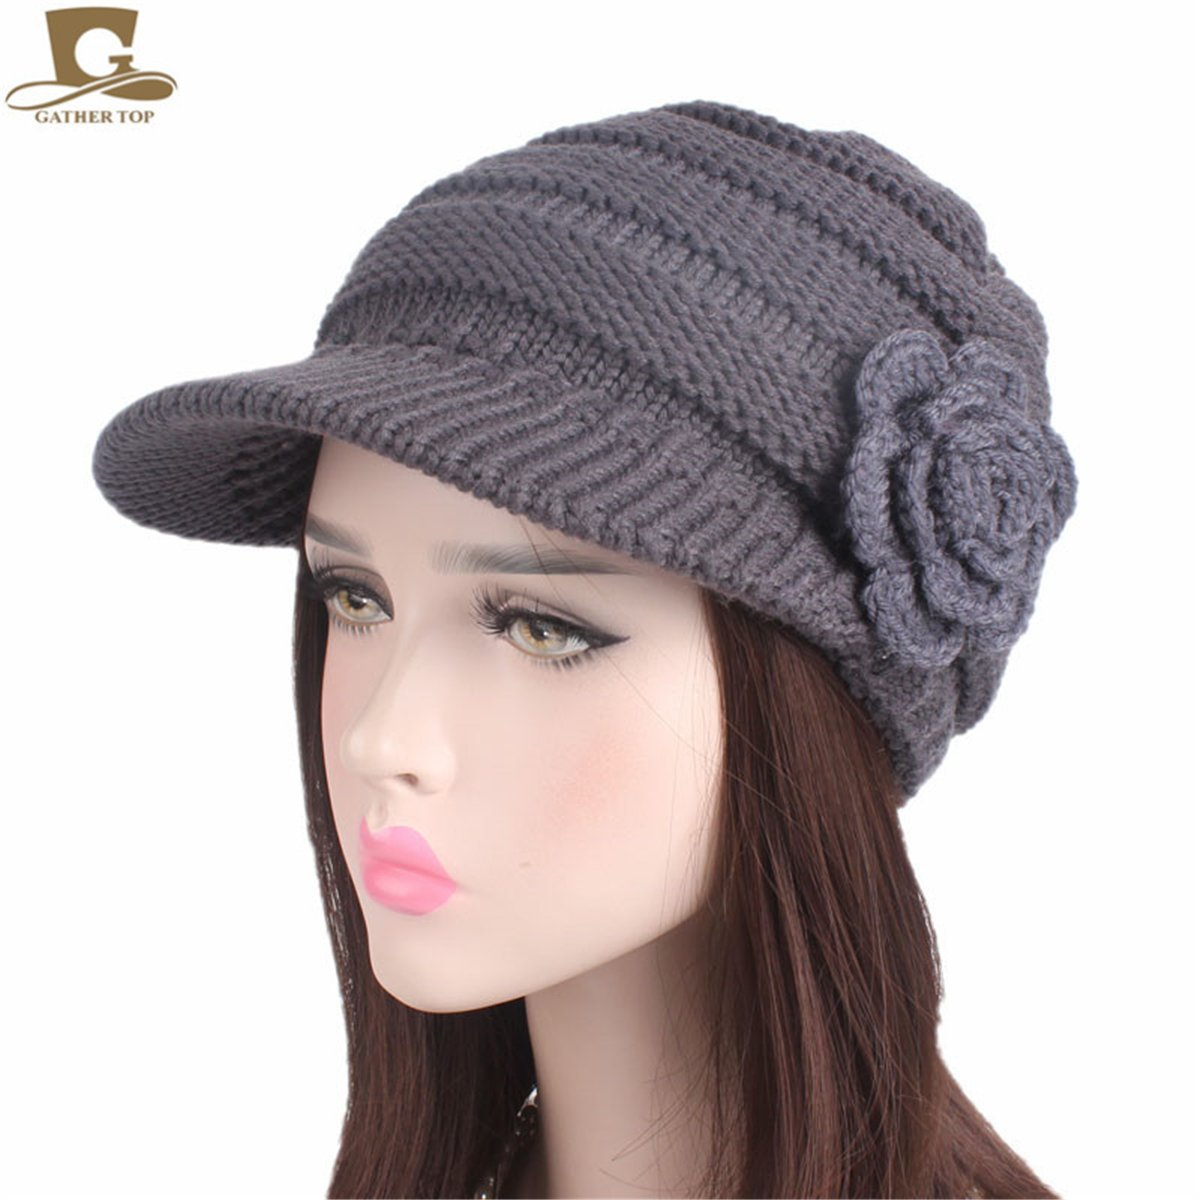 167396685 Cheap Cotton Hats For Chemo Patients, find Cotton Hats For Chemo ...